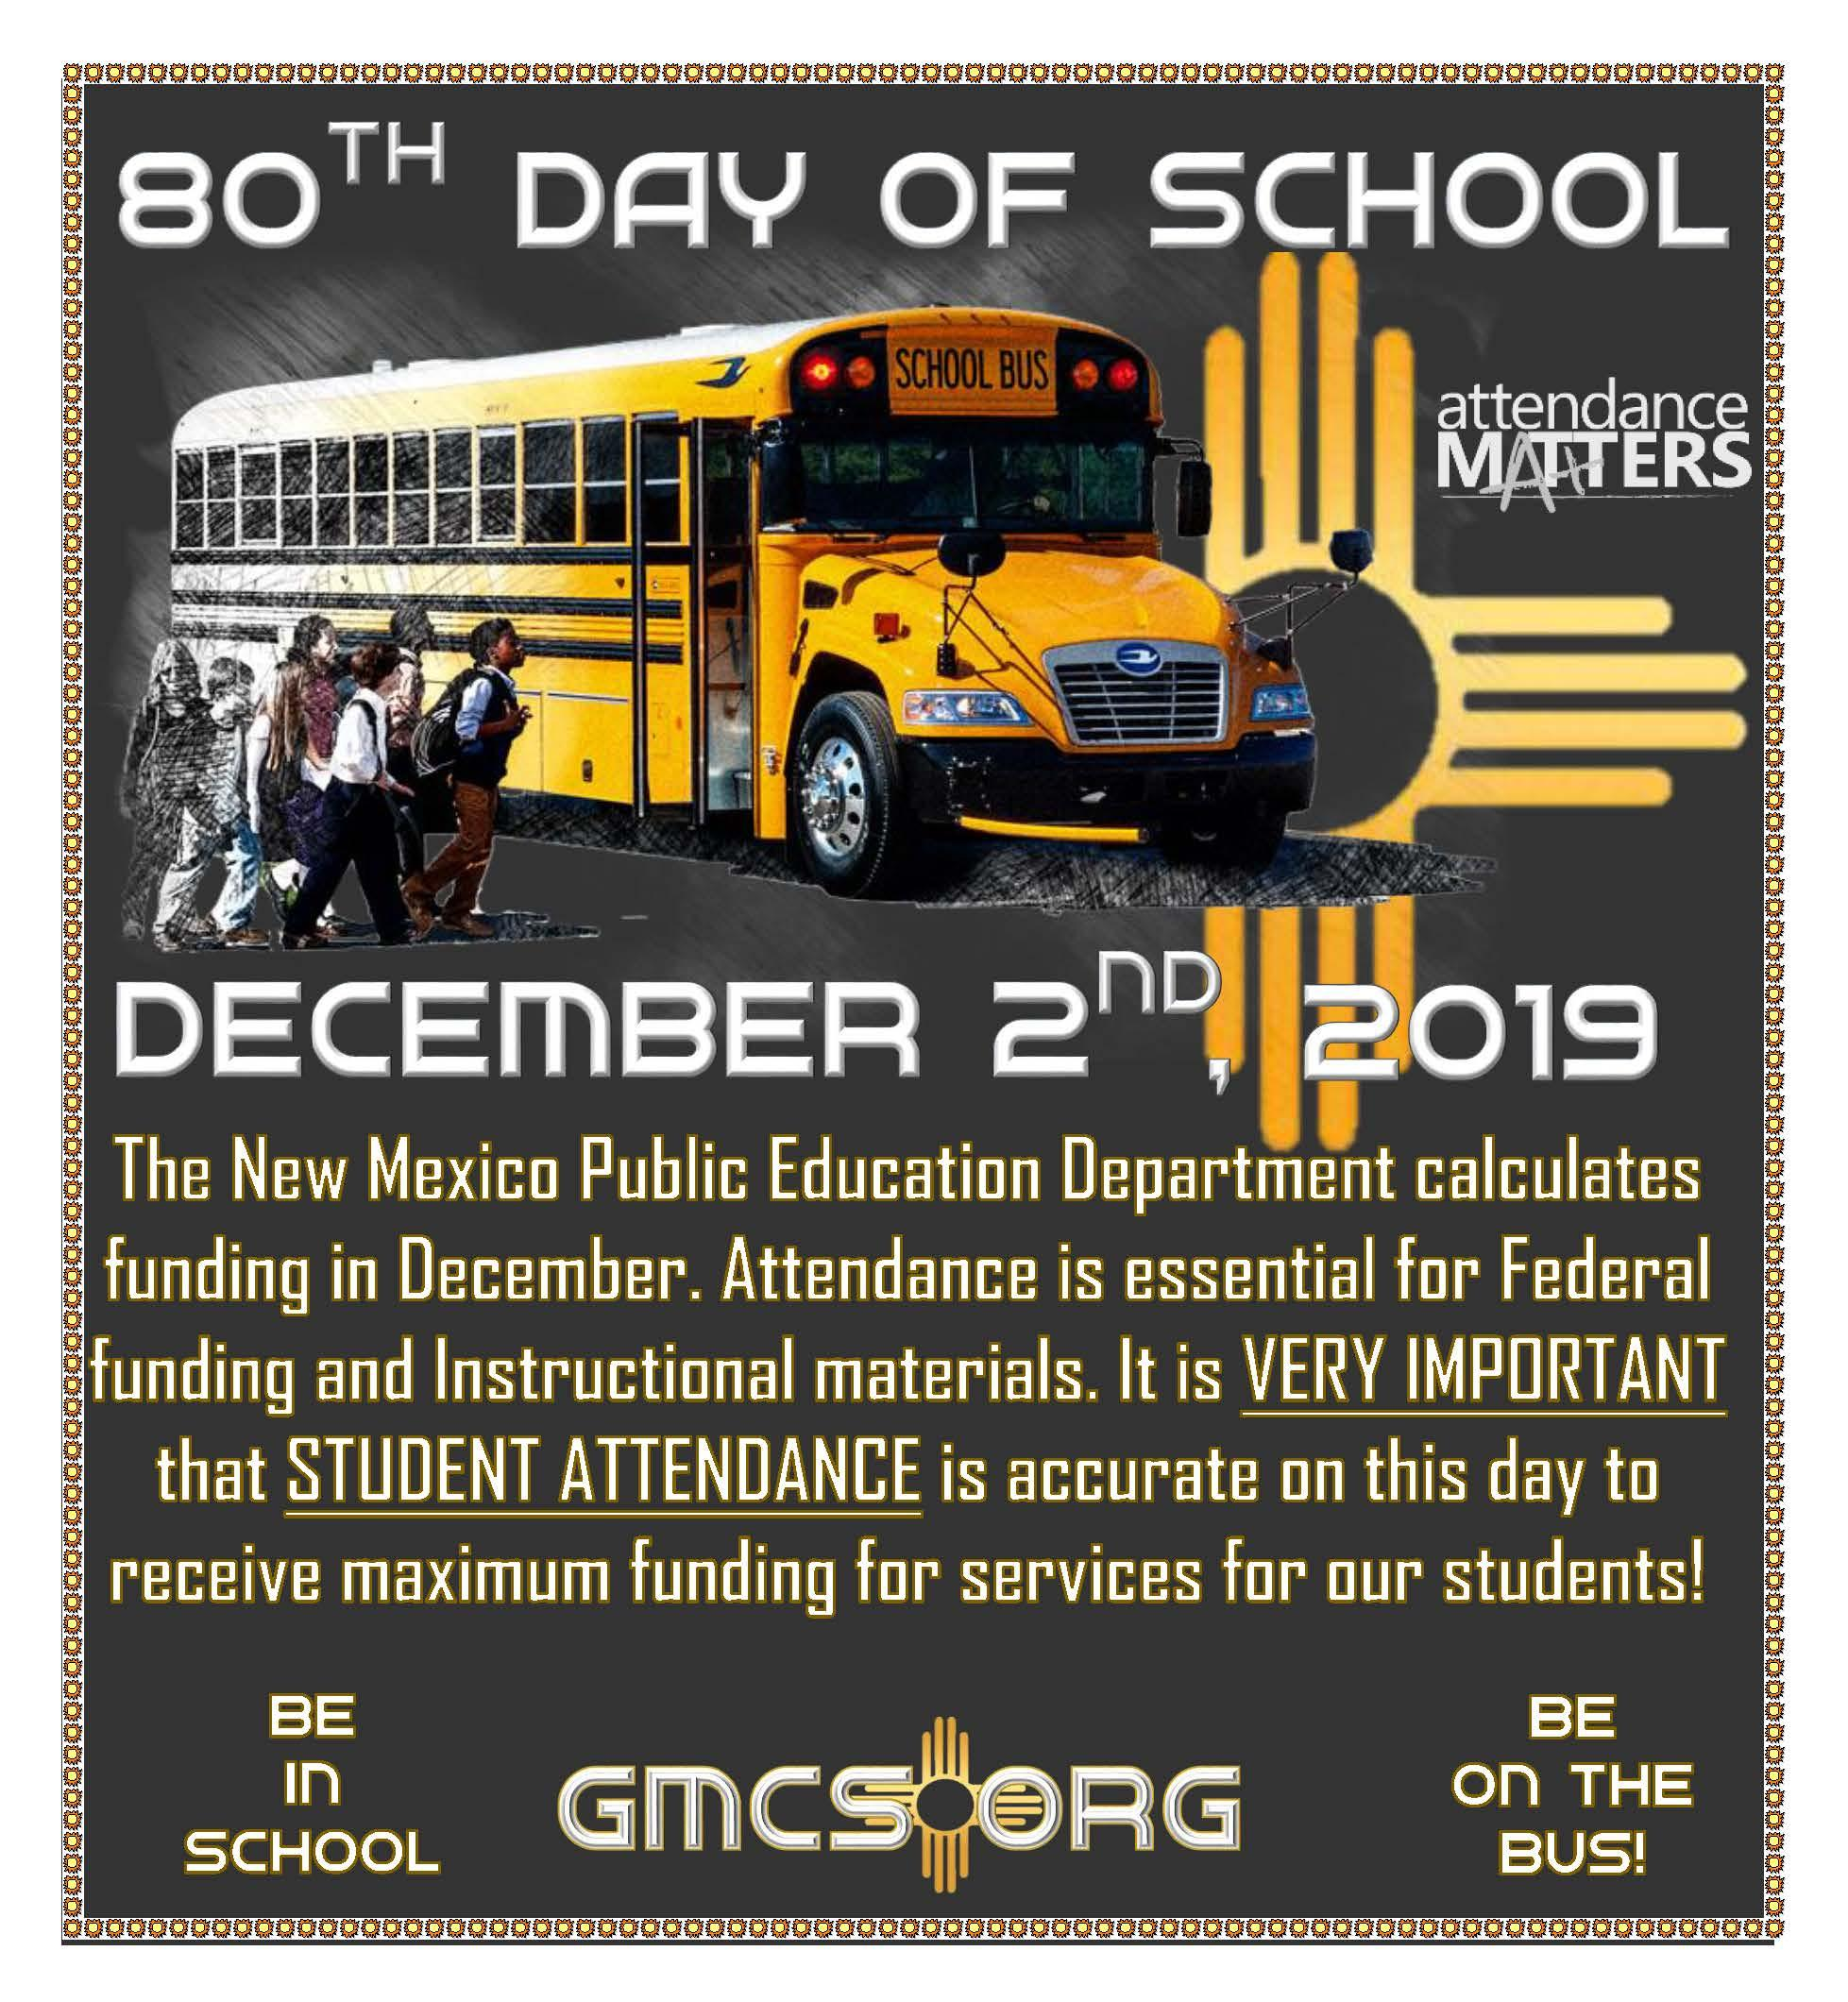 80th Day of School December 2